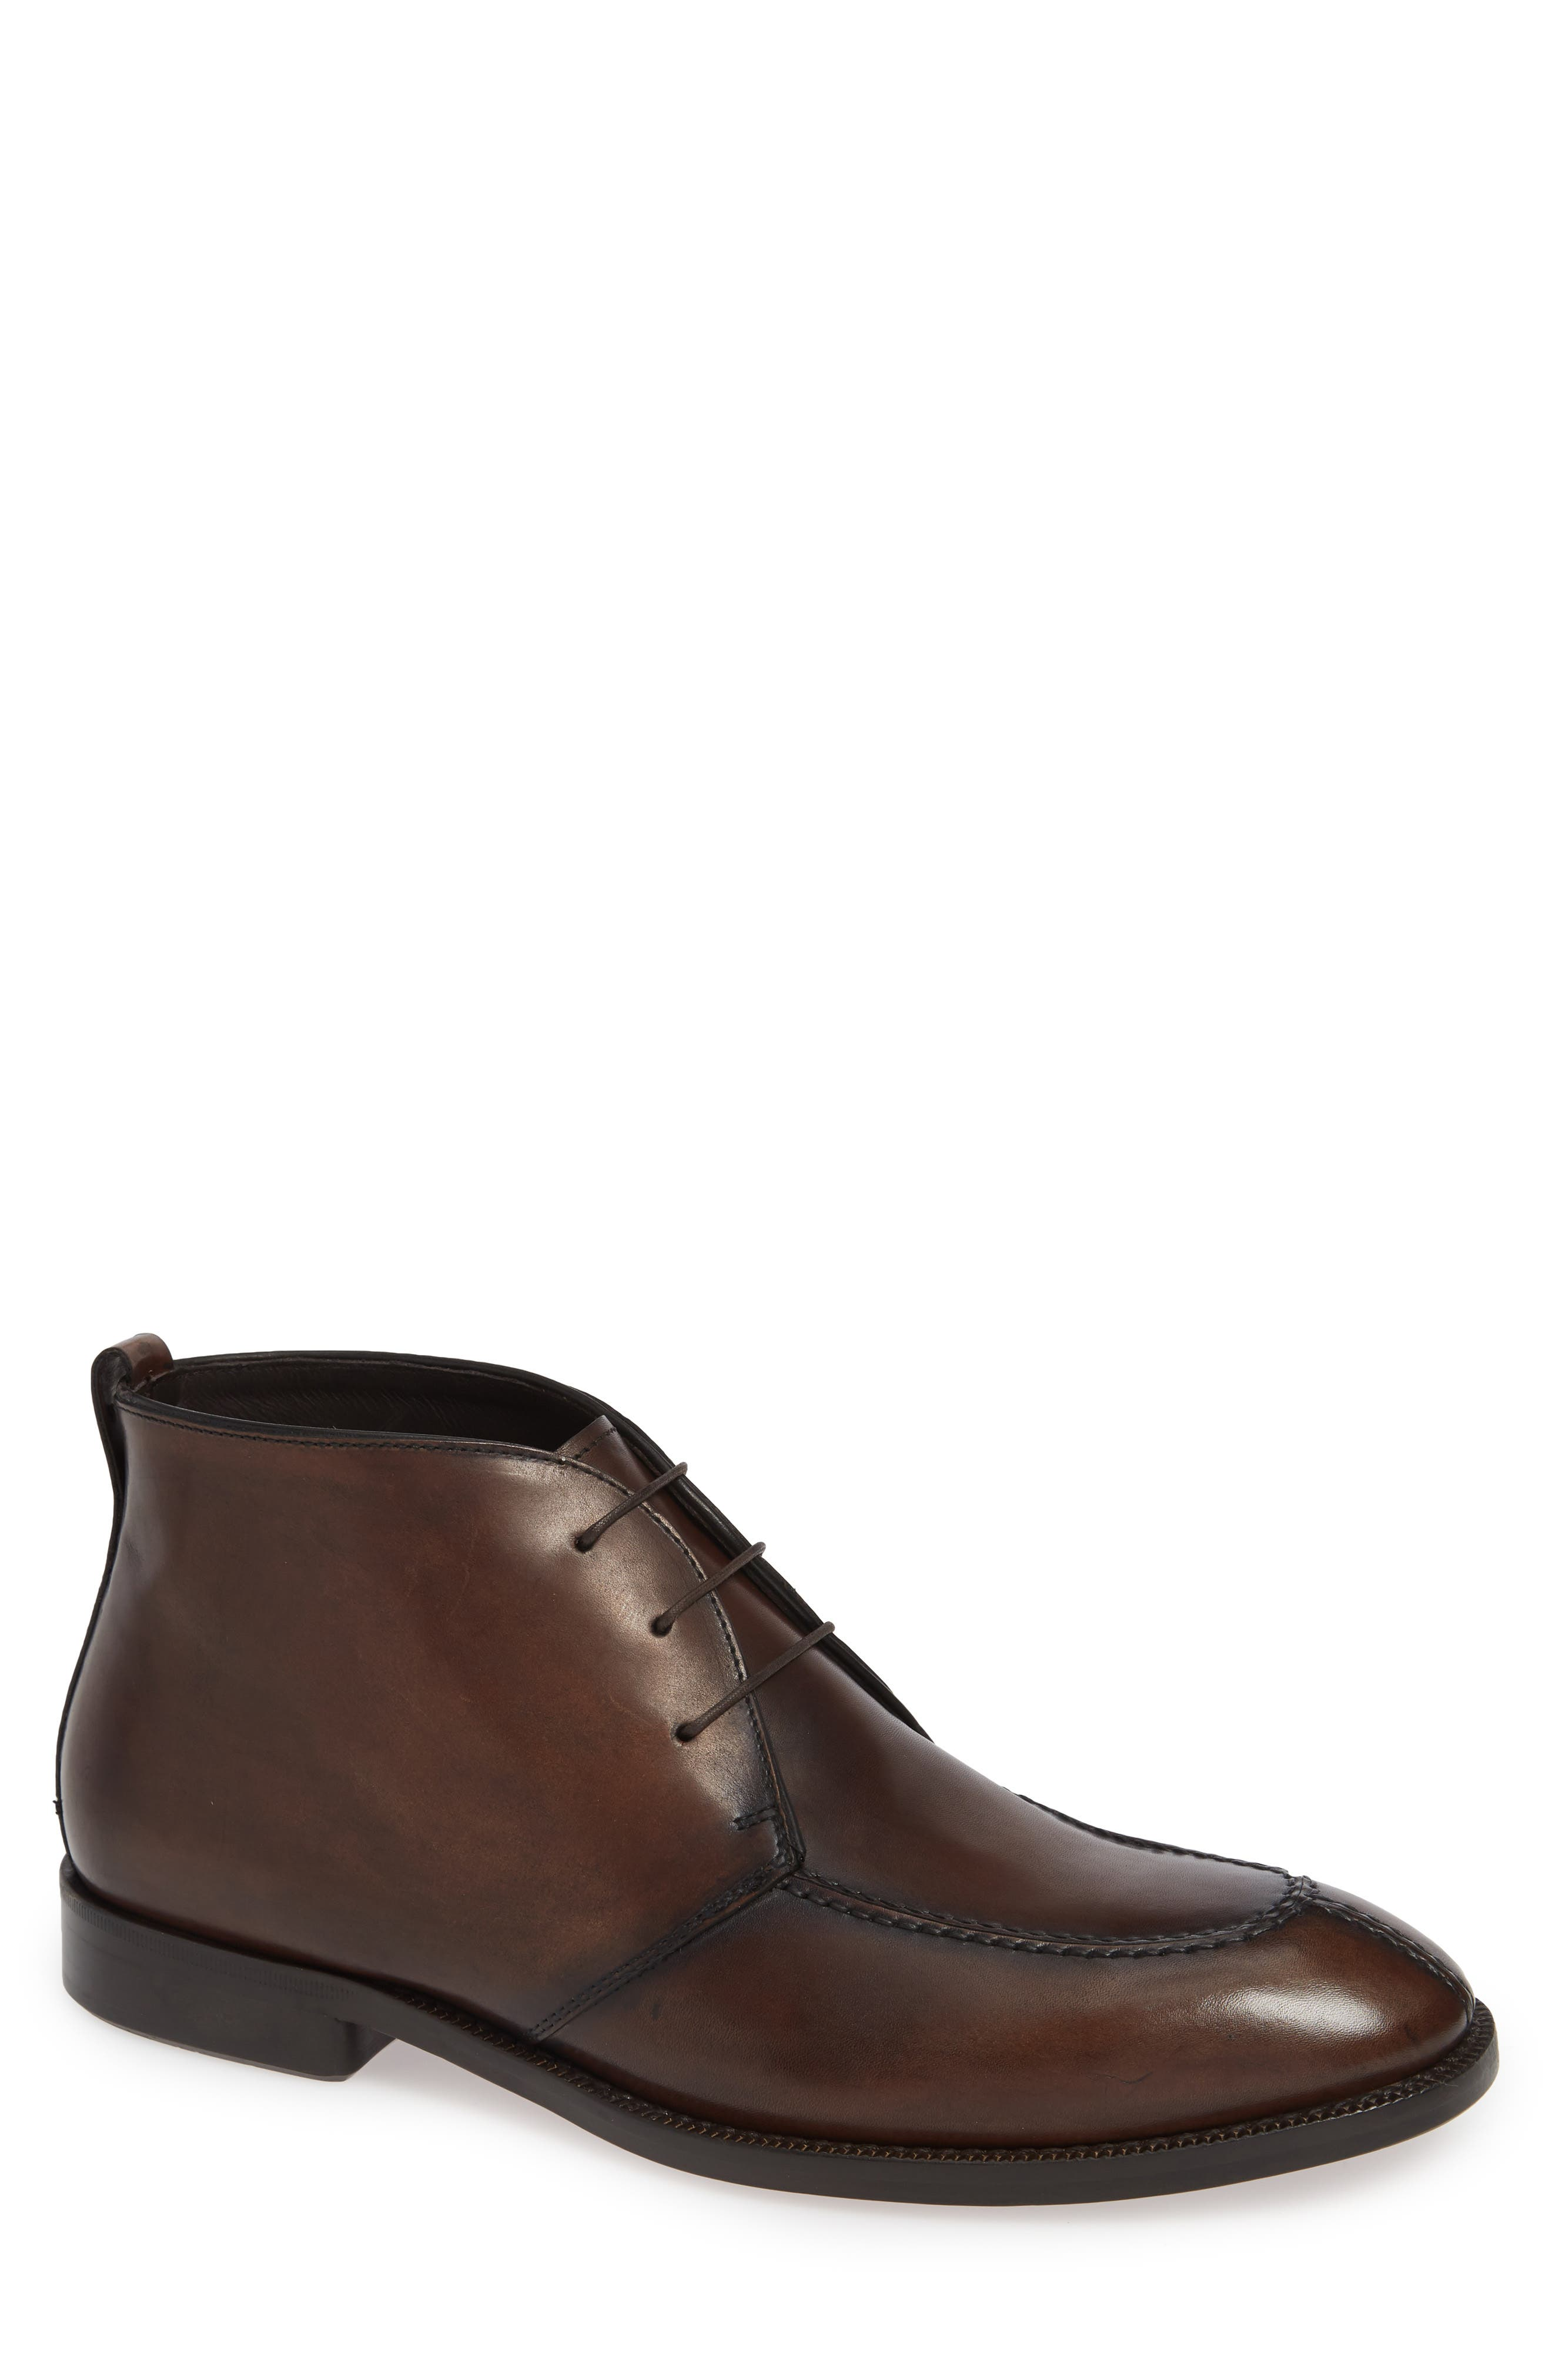 Allen Edmonds Rafael Chukka Boot, EEE - Brown